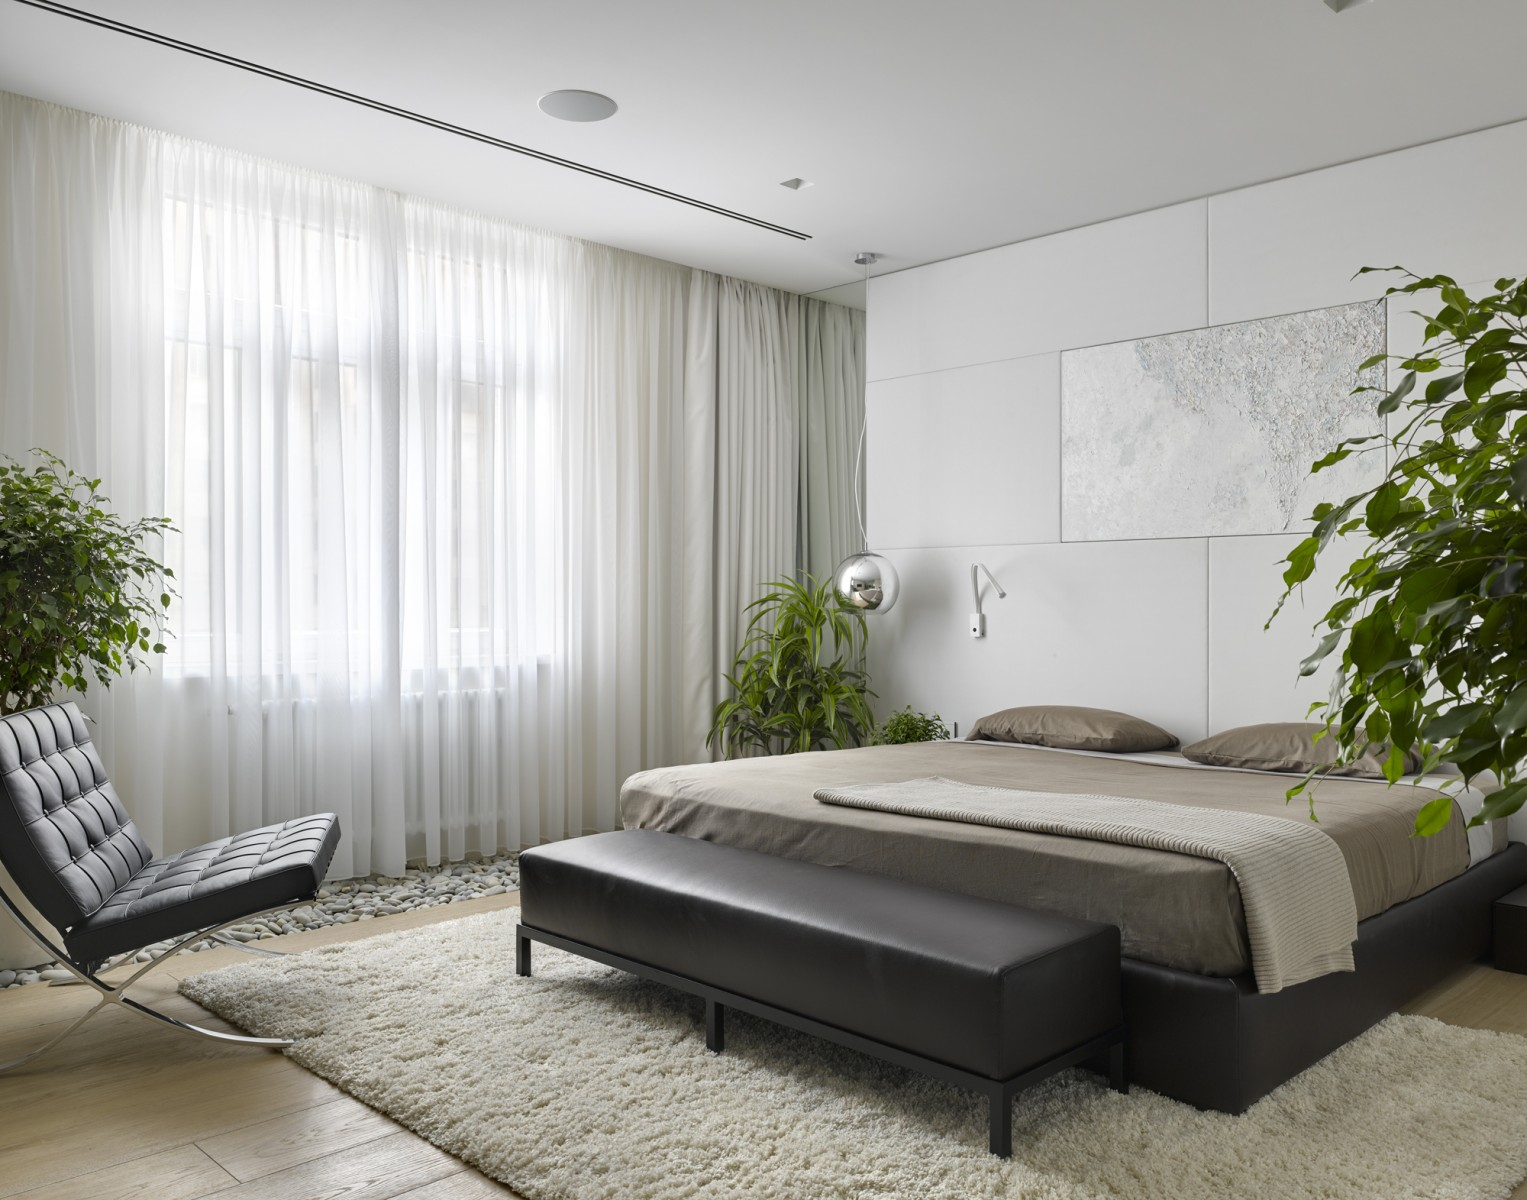 20 small bedroom ideas that will leave you speechless 13335 | 20 small bedroom ideas that will leave you speechless featured on architecture beast 03